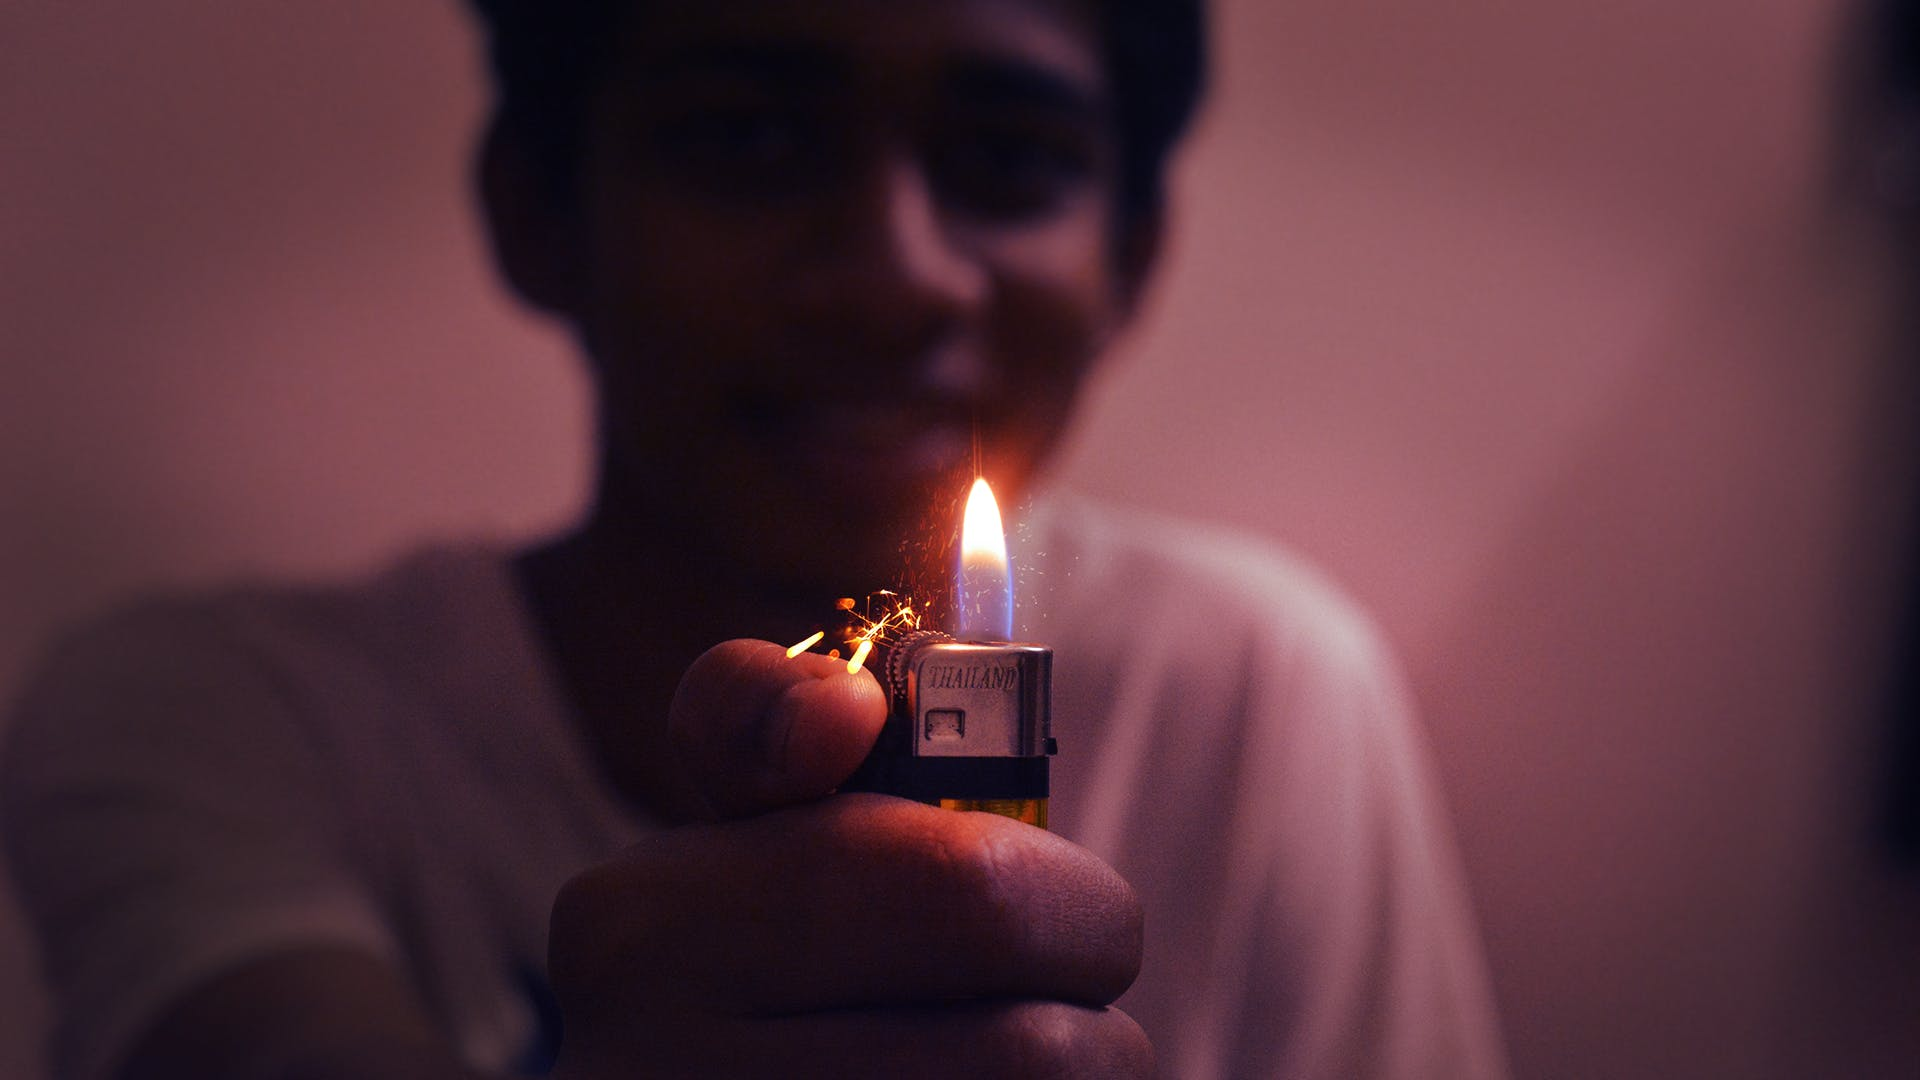 Man Holding Disposable Lighter